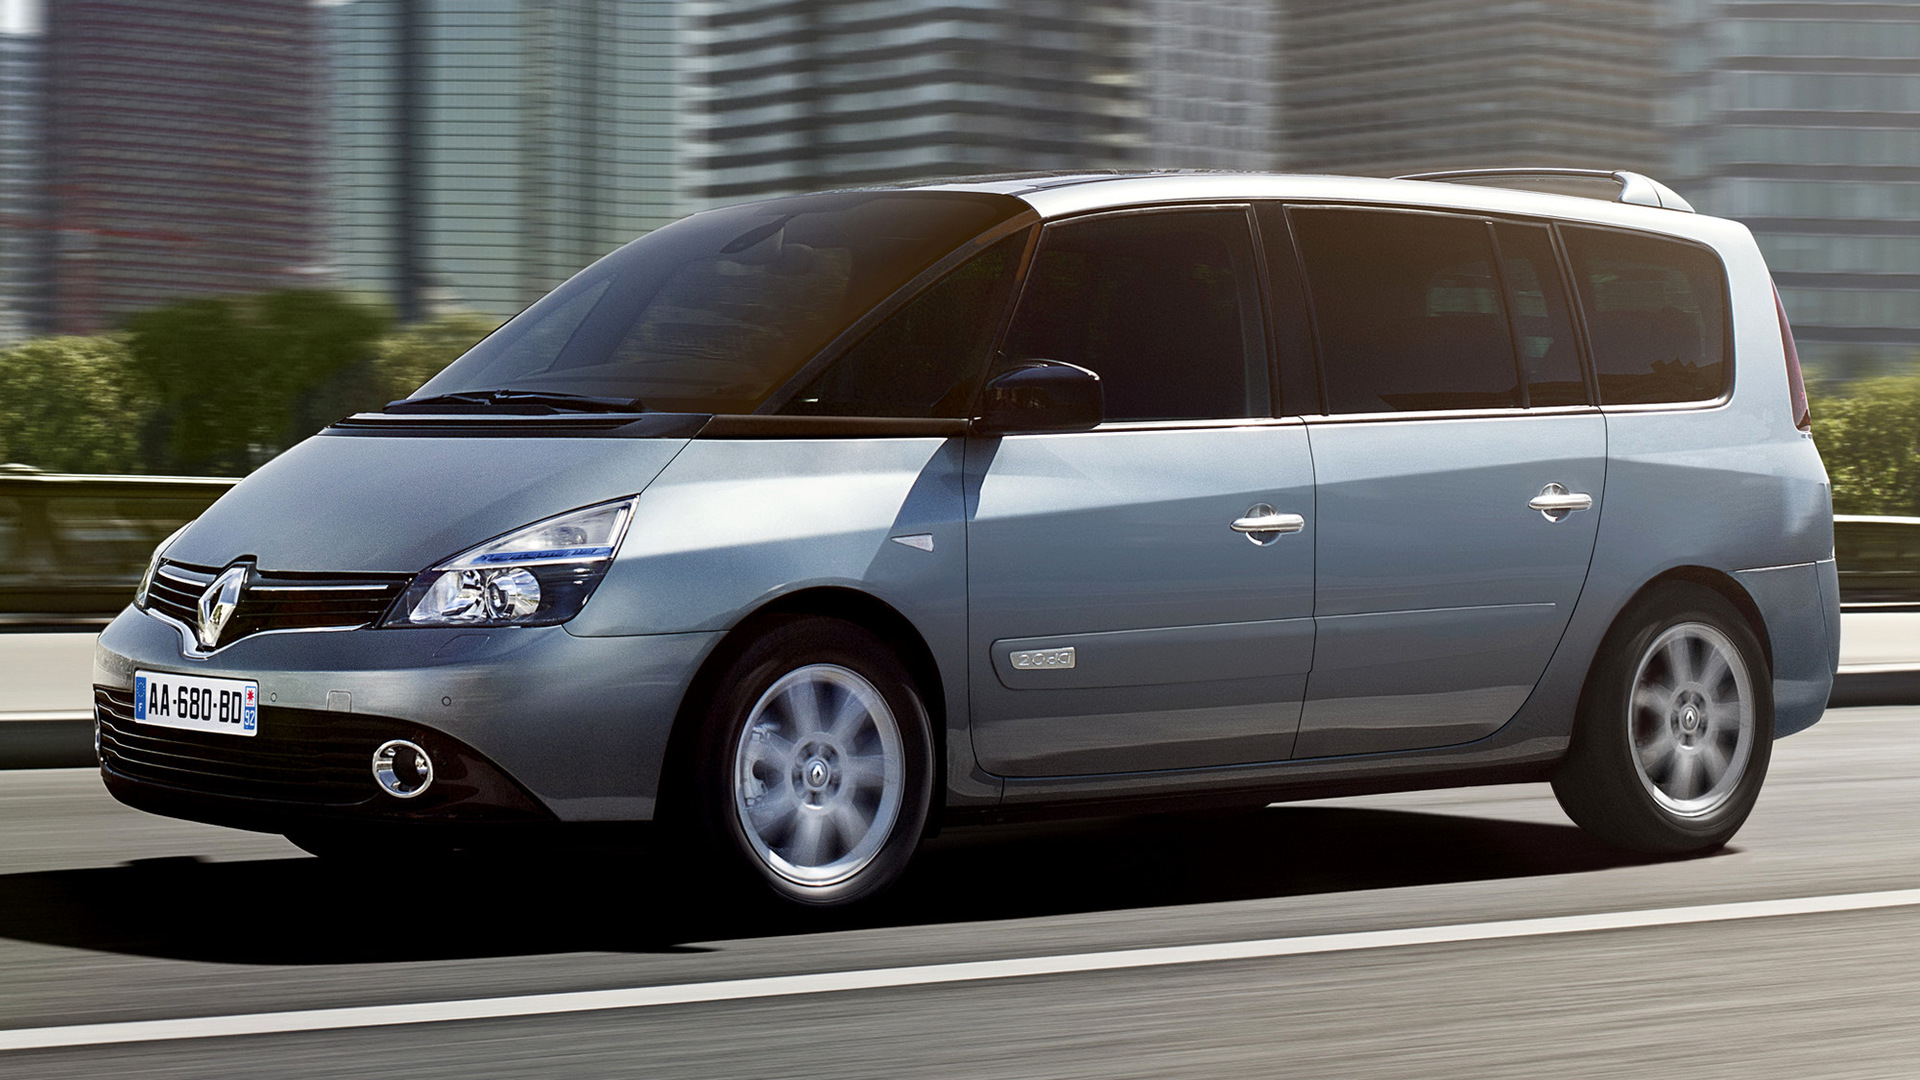 renault grand espace 2012 wallpapers and hd images car. Black Bedroom Furniture Sets. Home Design Ideas